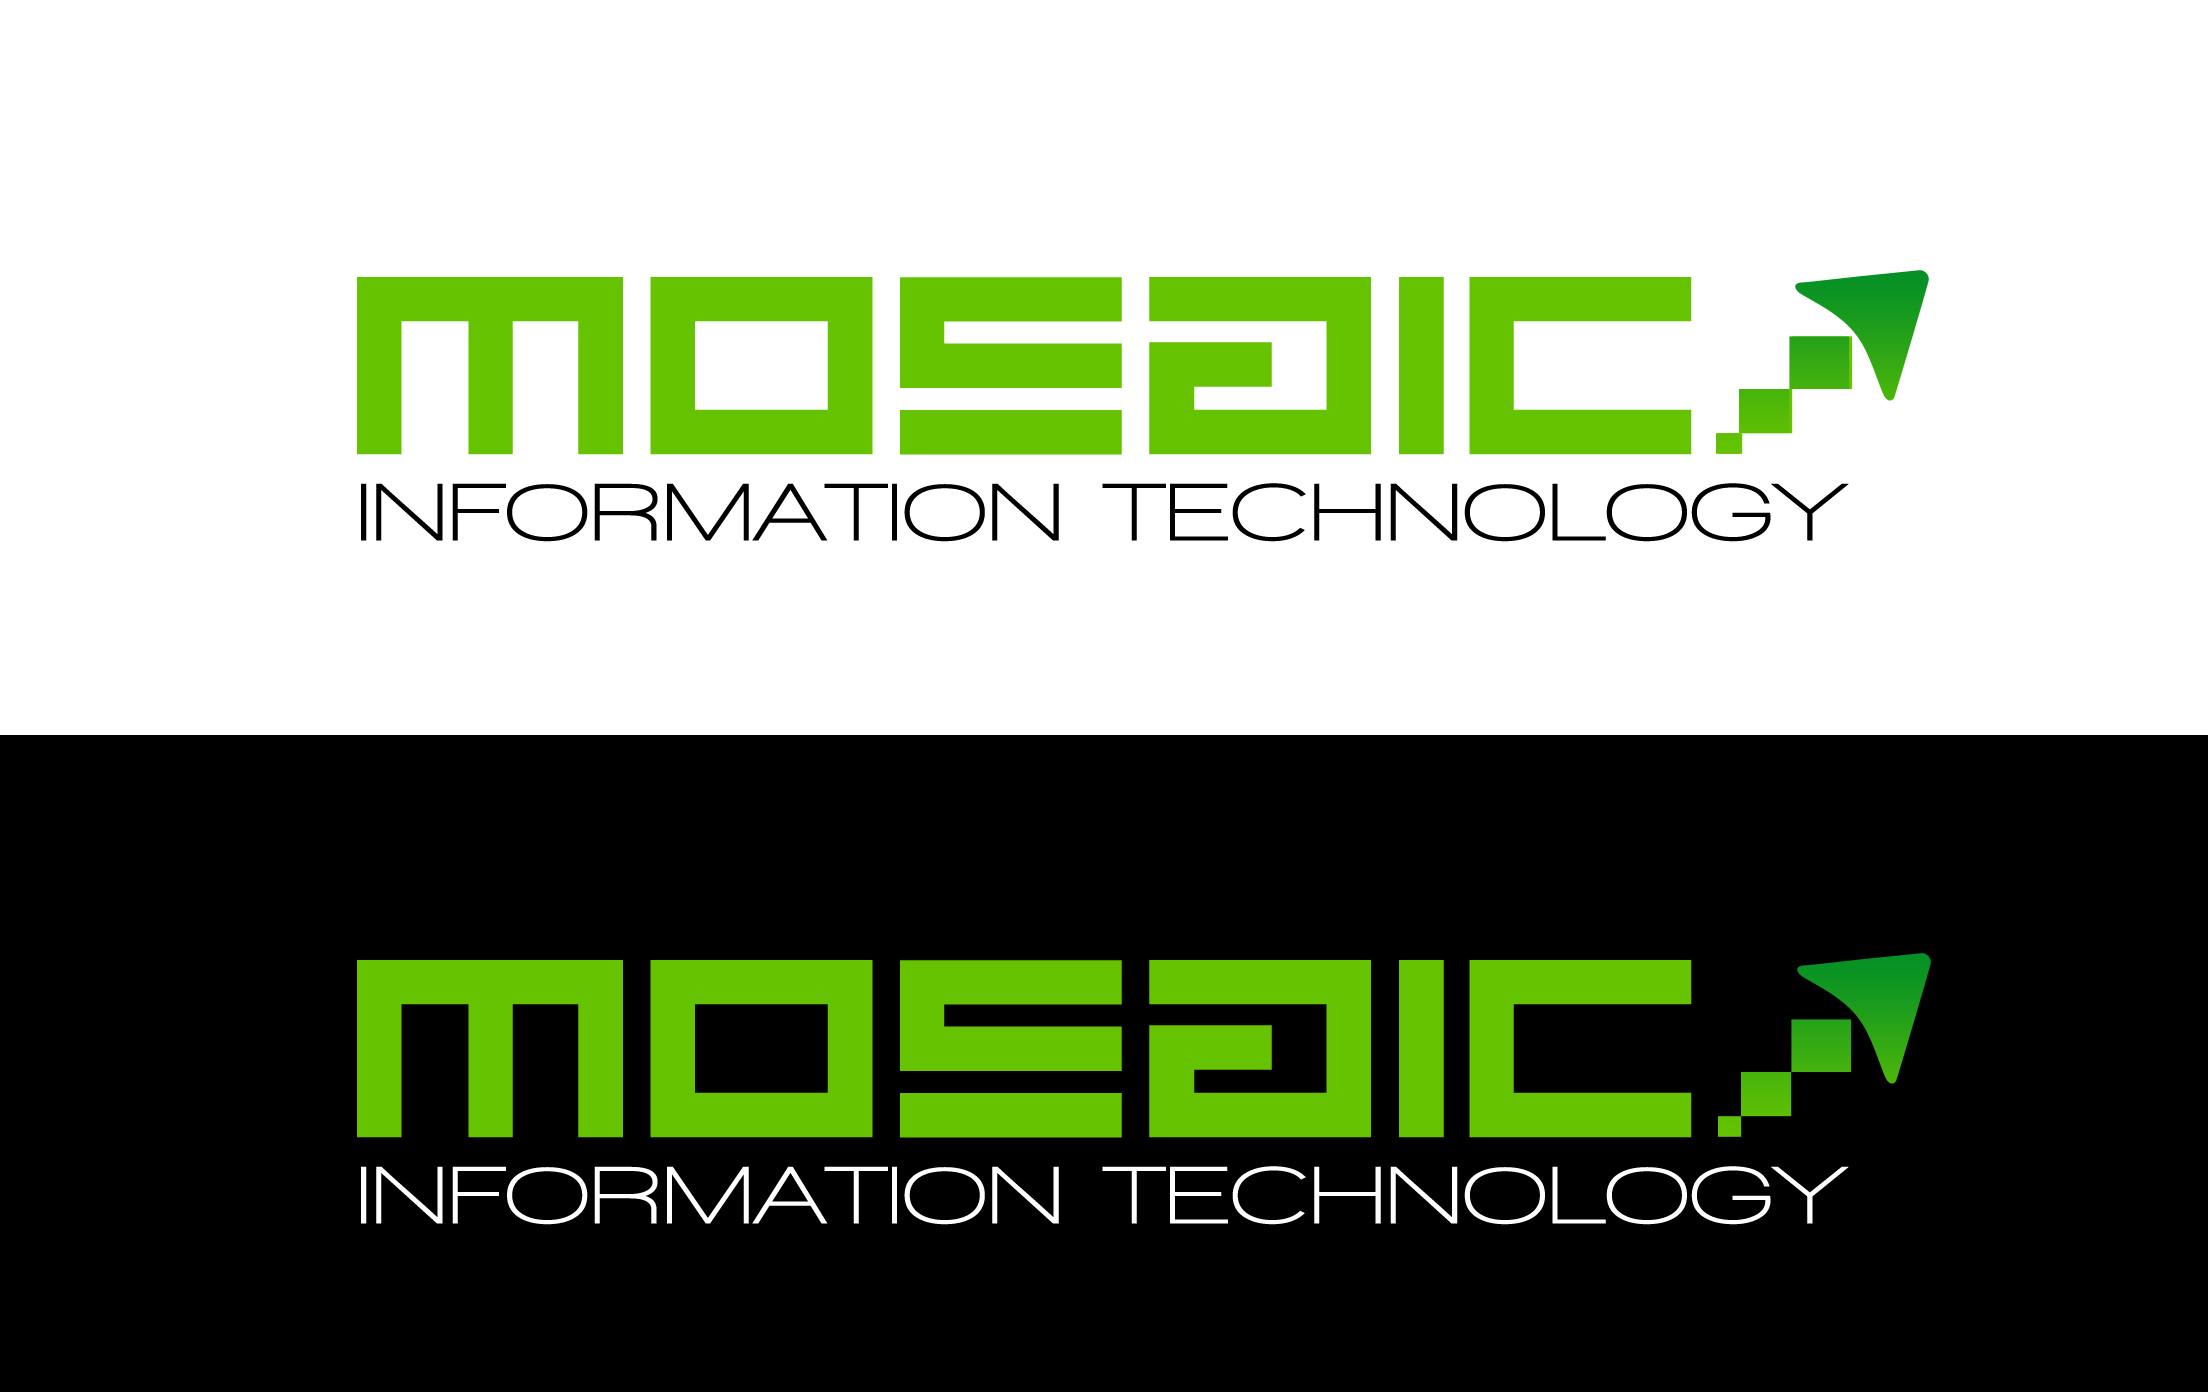 Logo Design by Lama Creative - Entry No. 62 in the Logo Design Contest Mosaic Information Technology Logo Design.